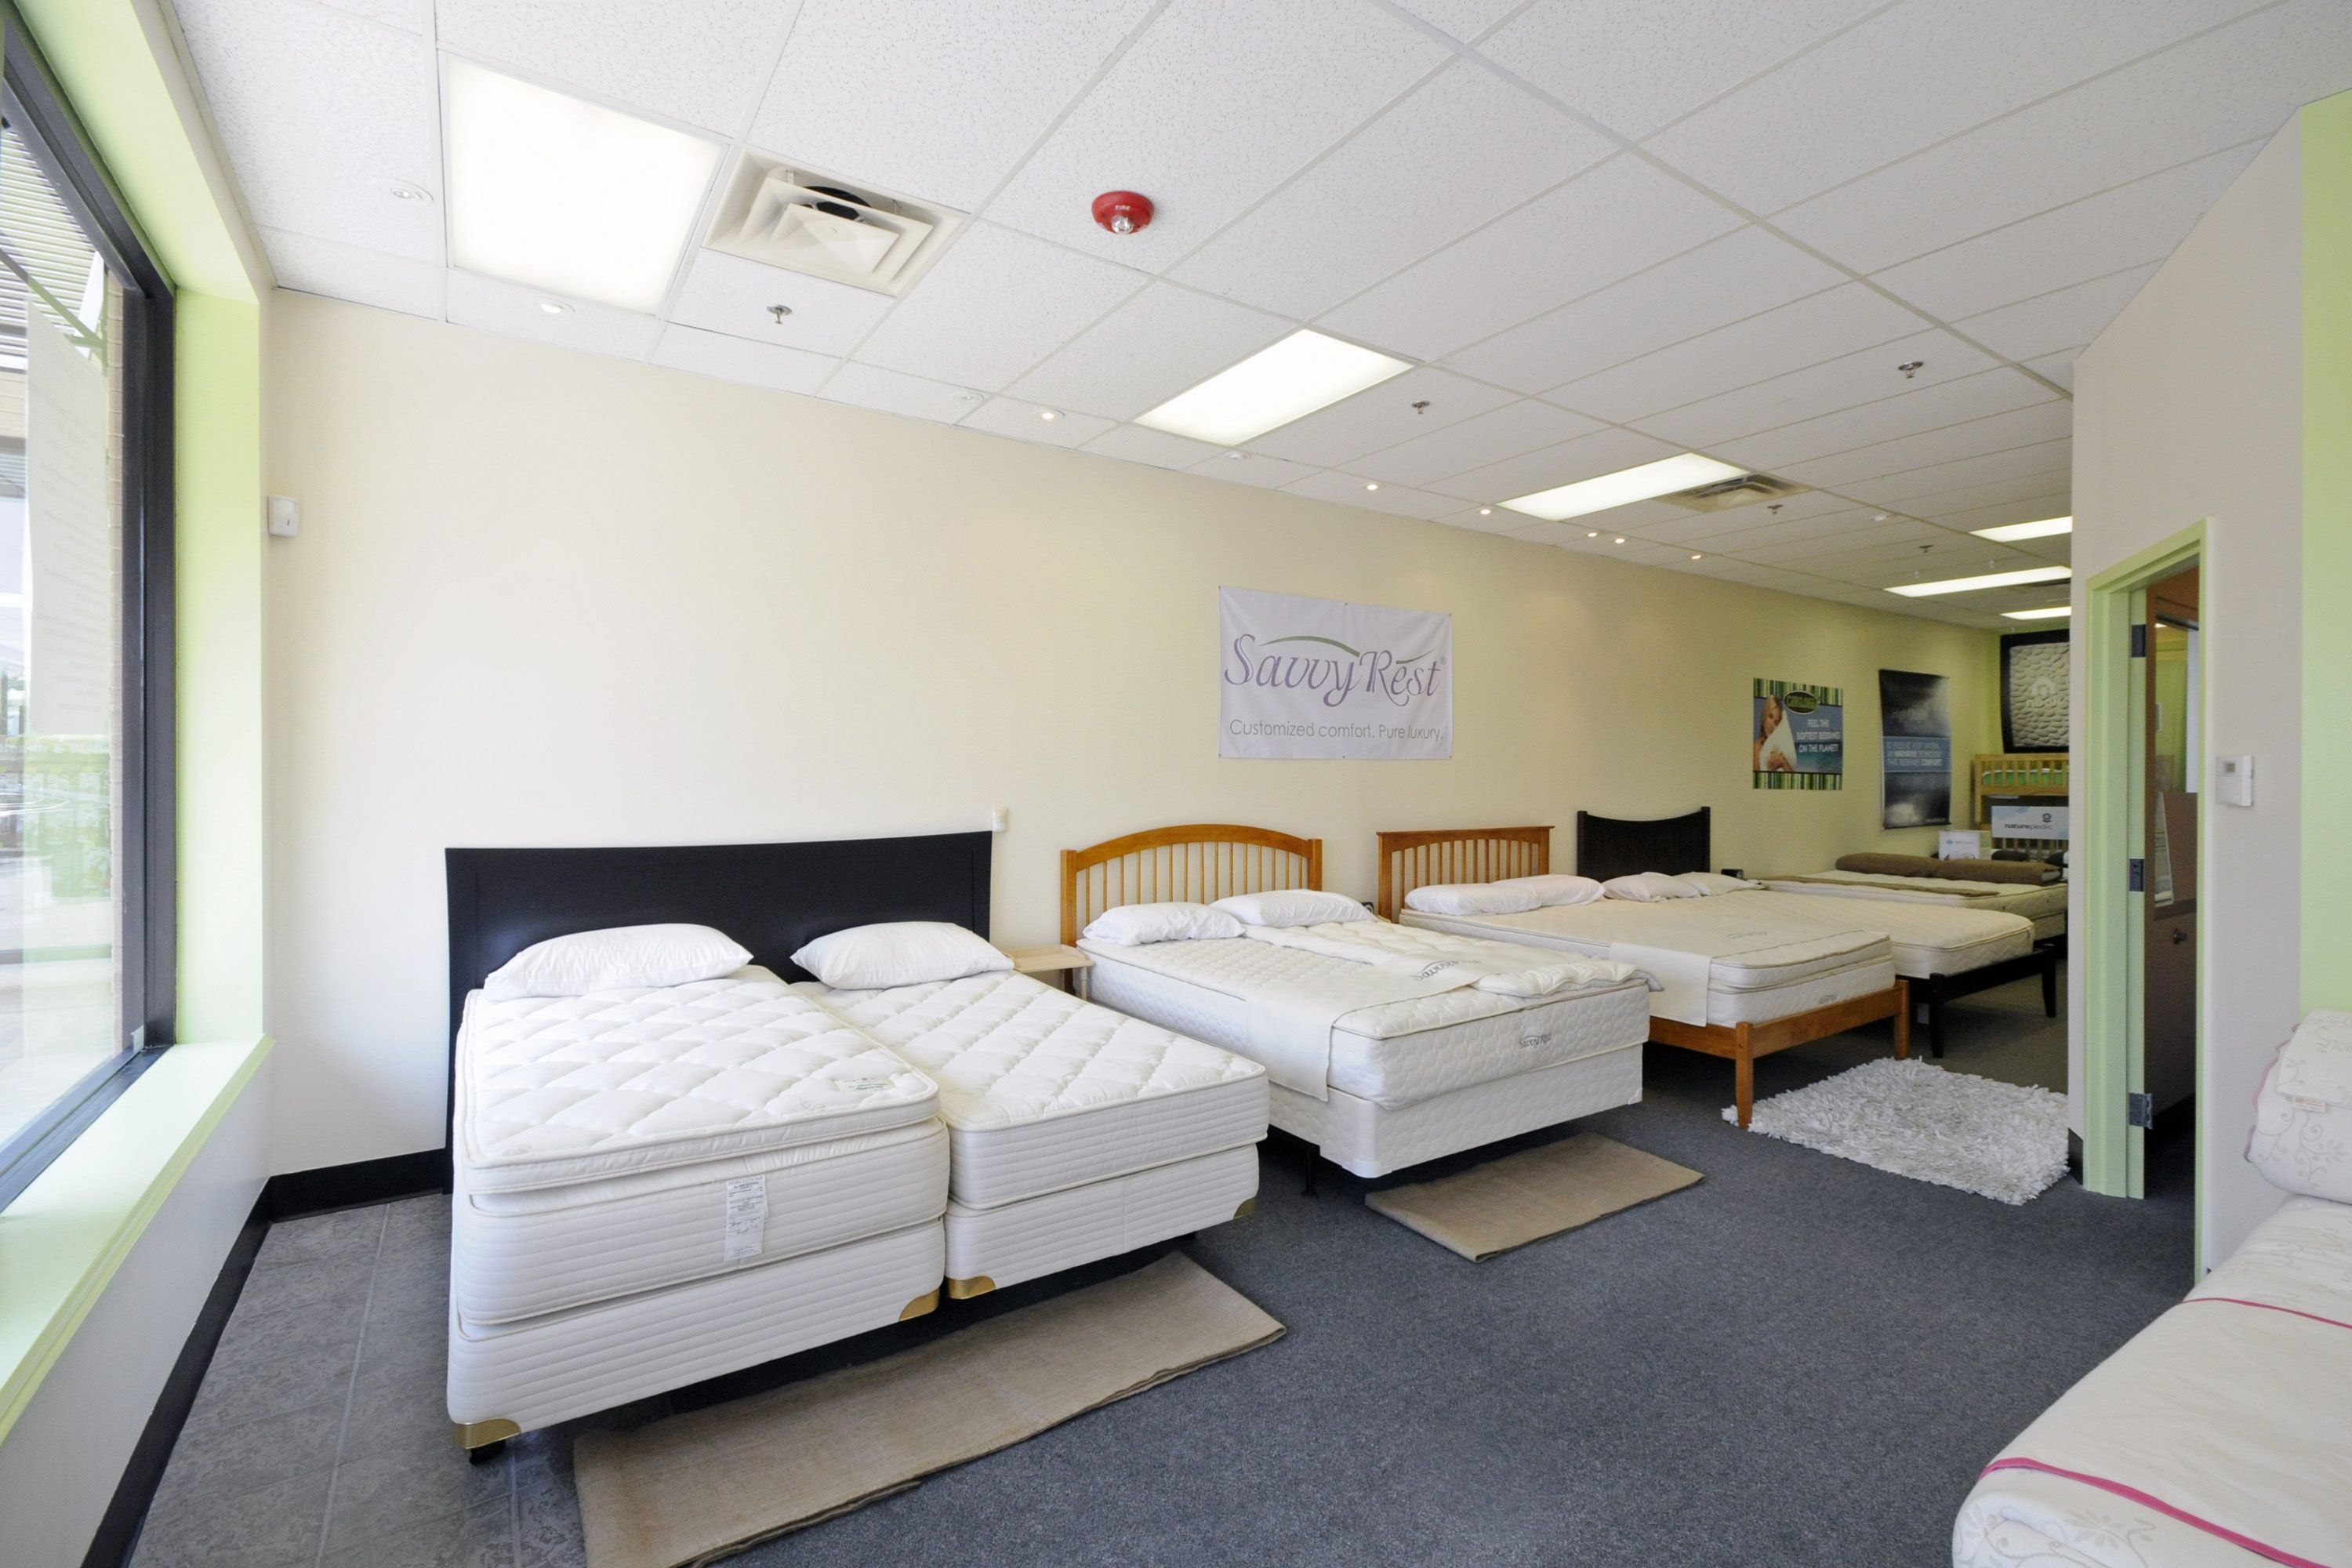 Lovely The Organic Bedroom Showroom   Showing Royal Pedic And Savvy Rest